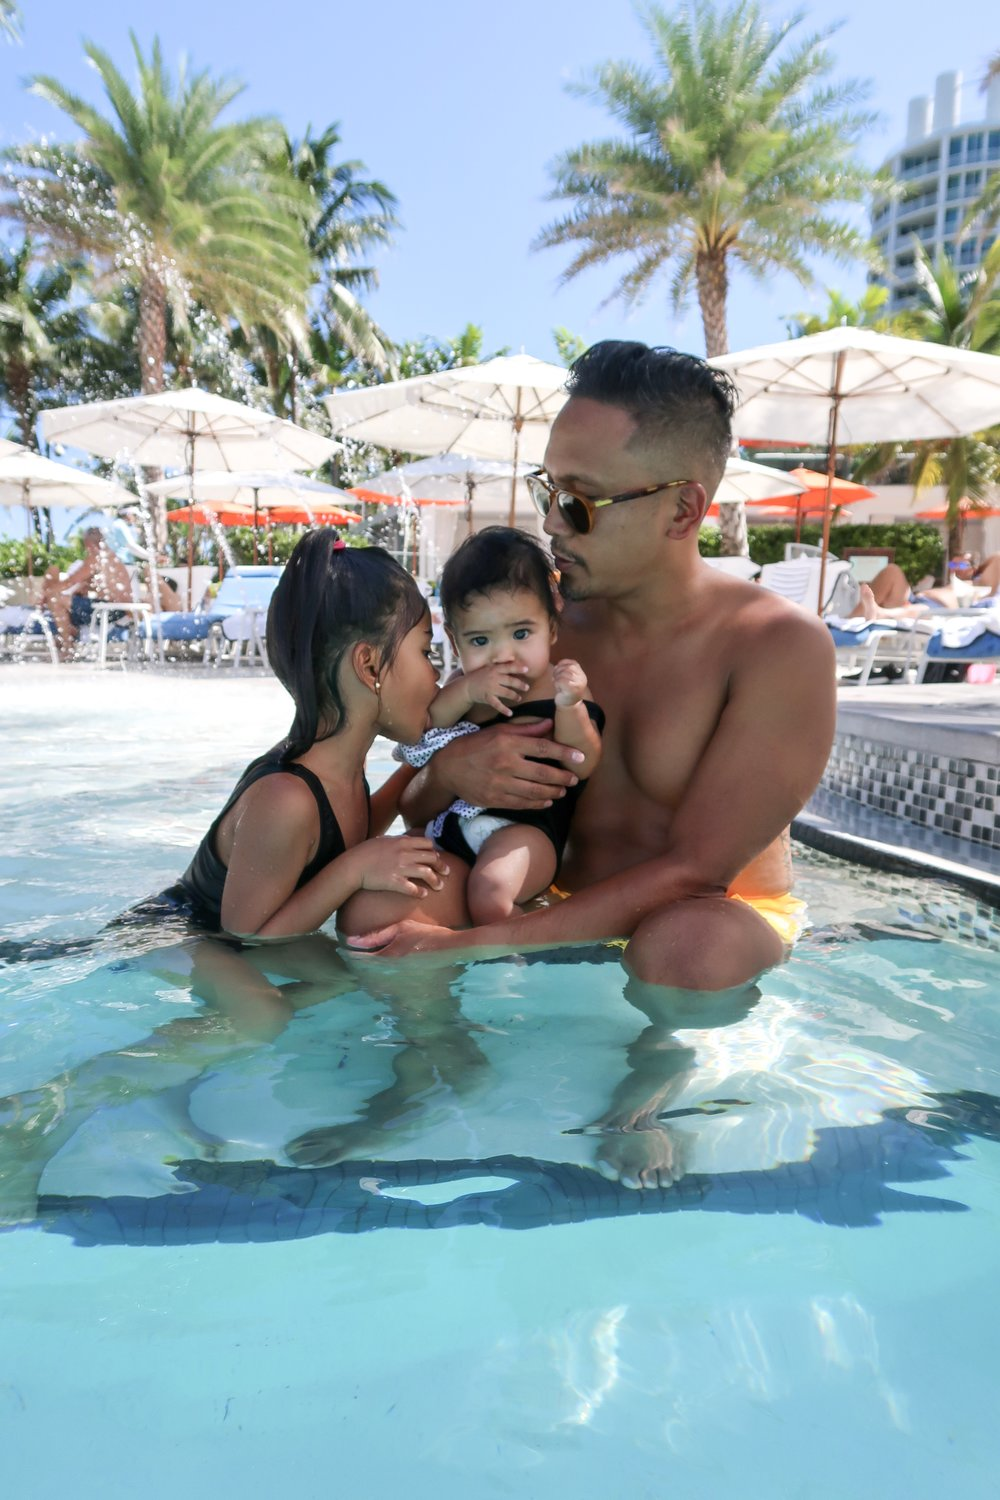 The hubby and the girls cooling down after chilling in the cabana at SOAK.